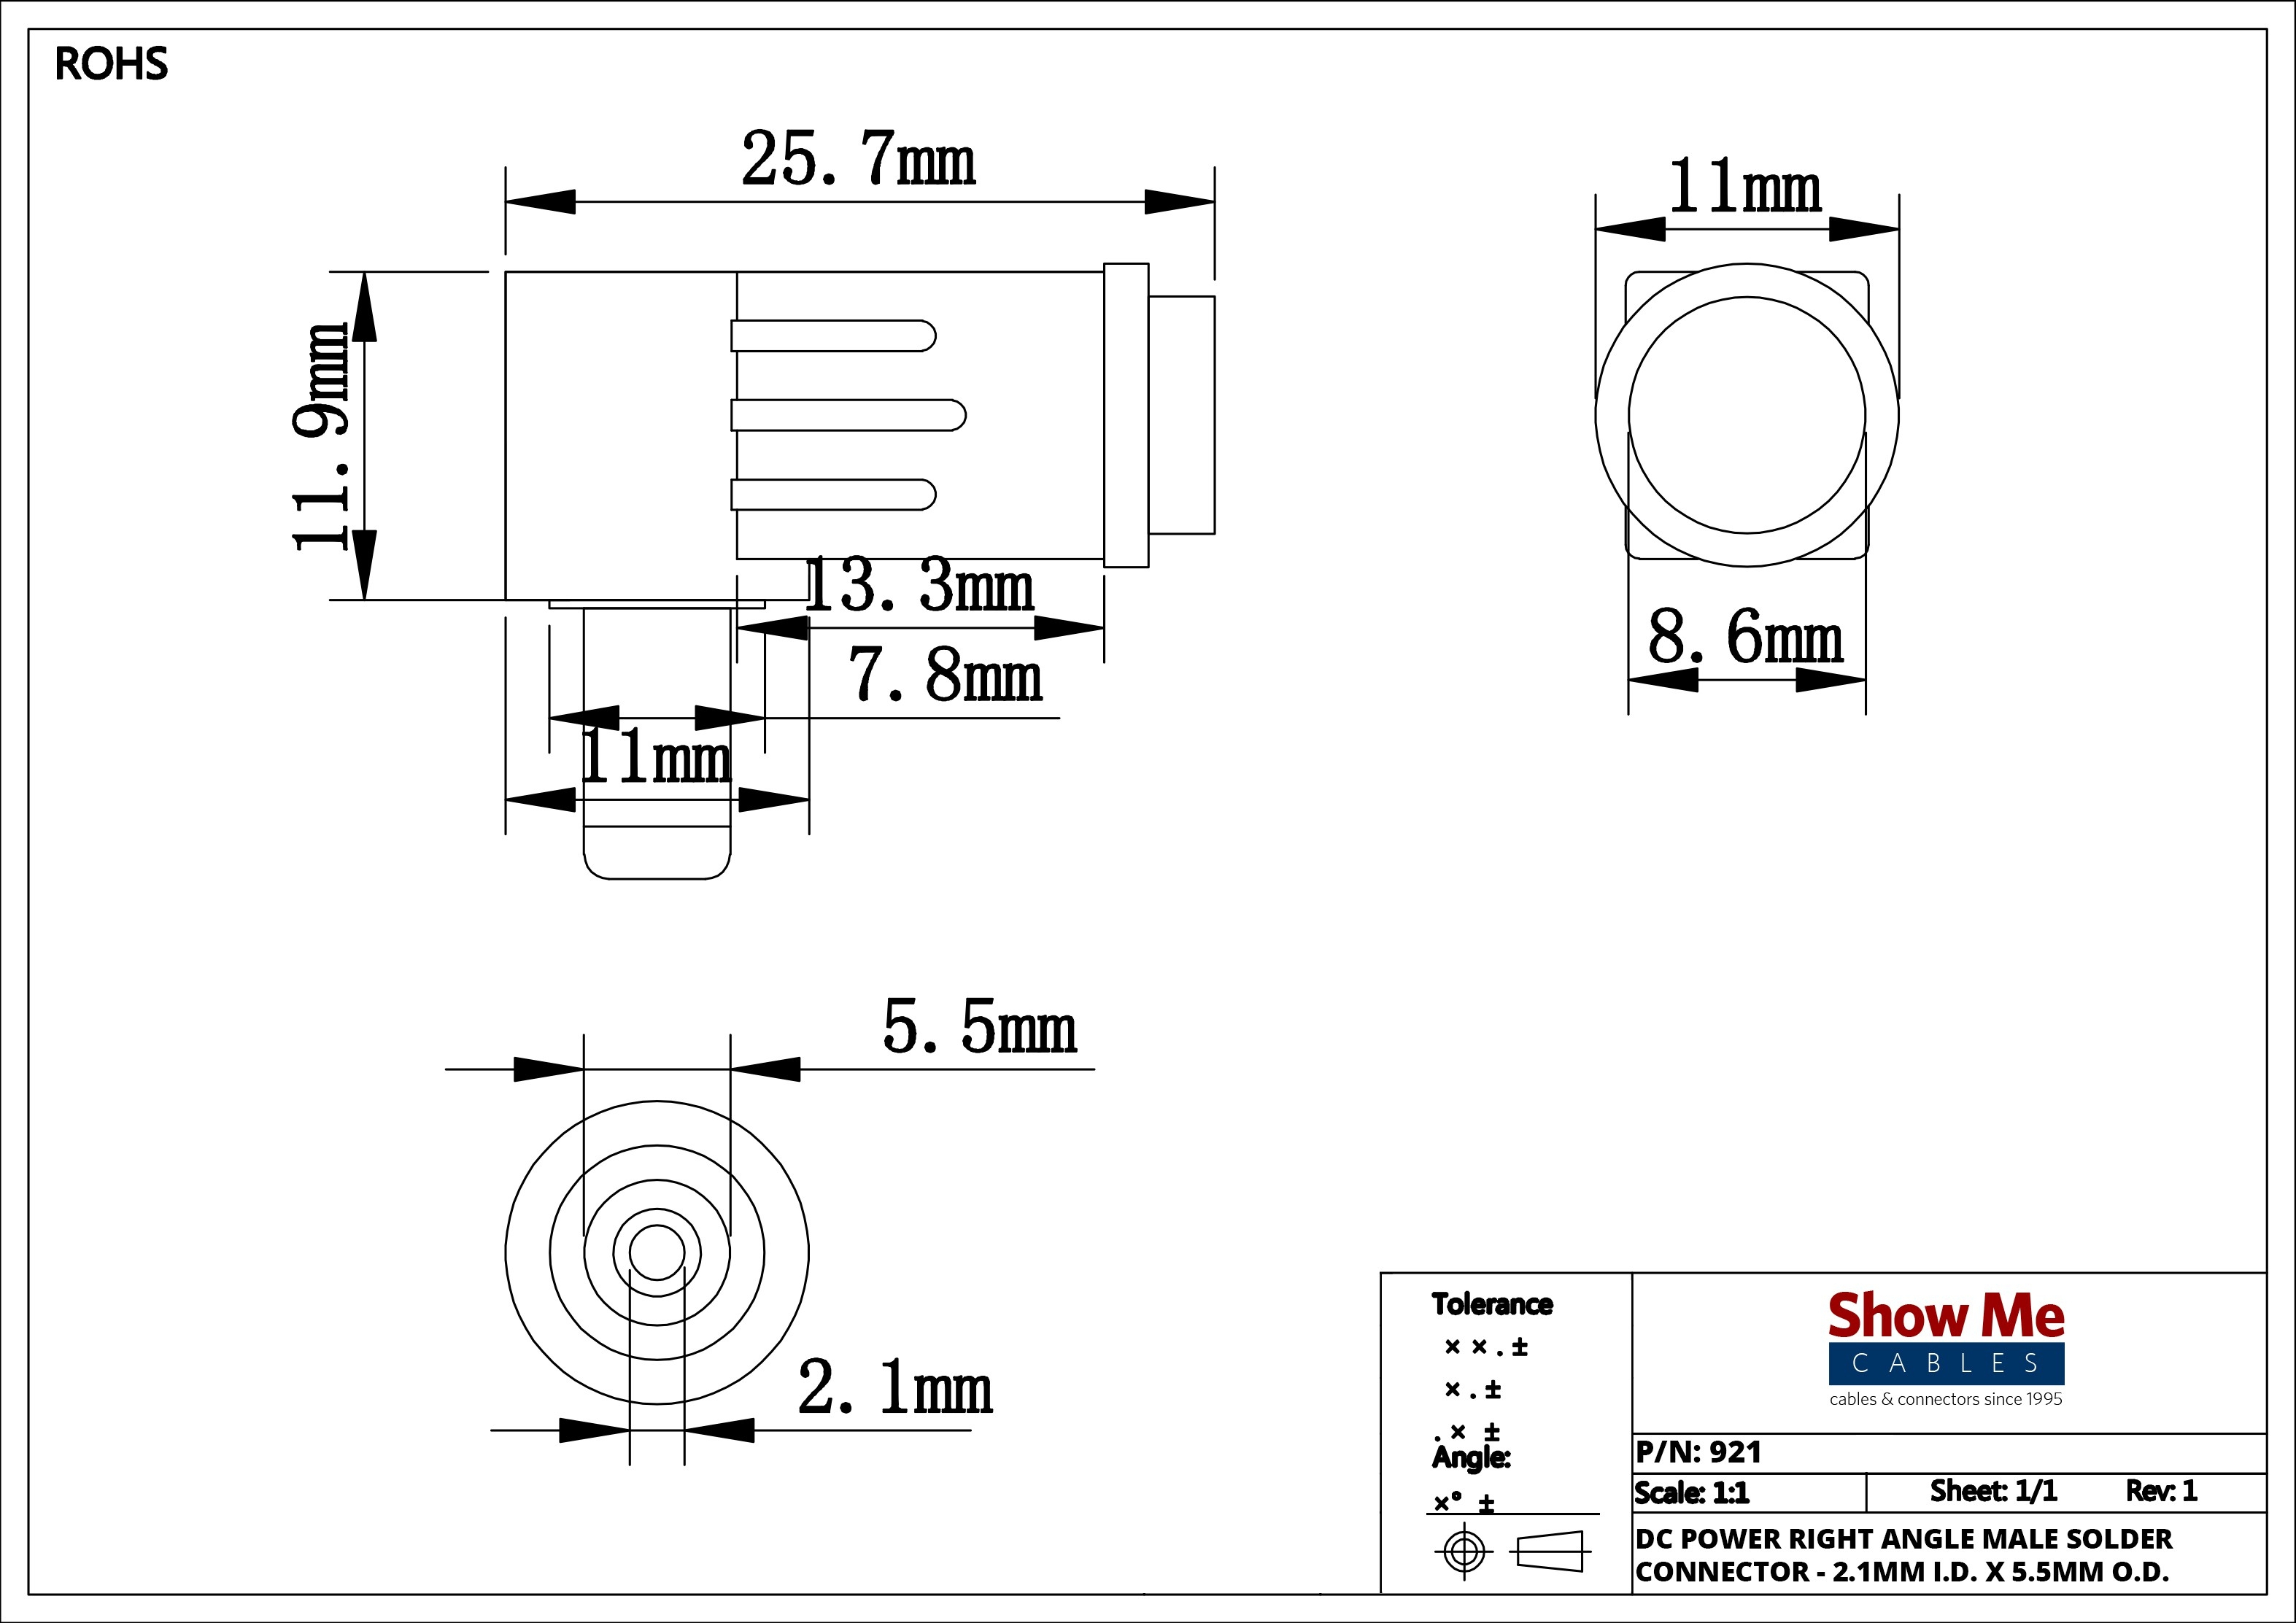 sprecher schuh ca3 9 10 wiring diagram Download-Home Speaker Wiring Diagram Gallery 11-p